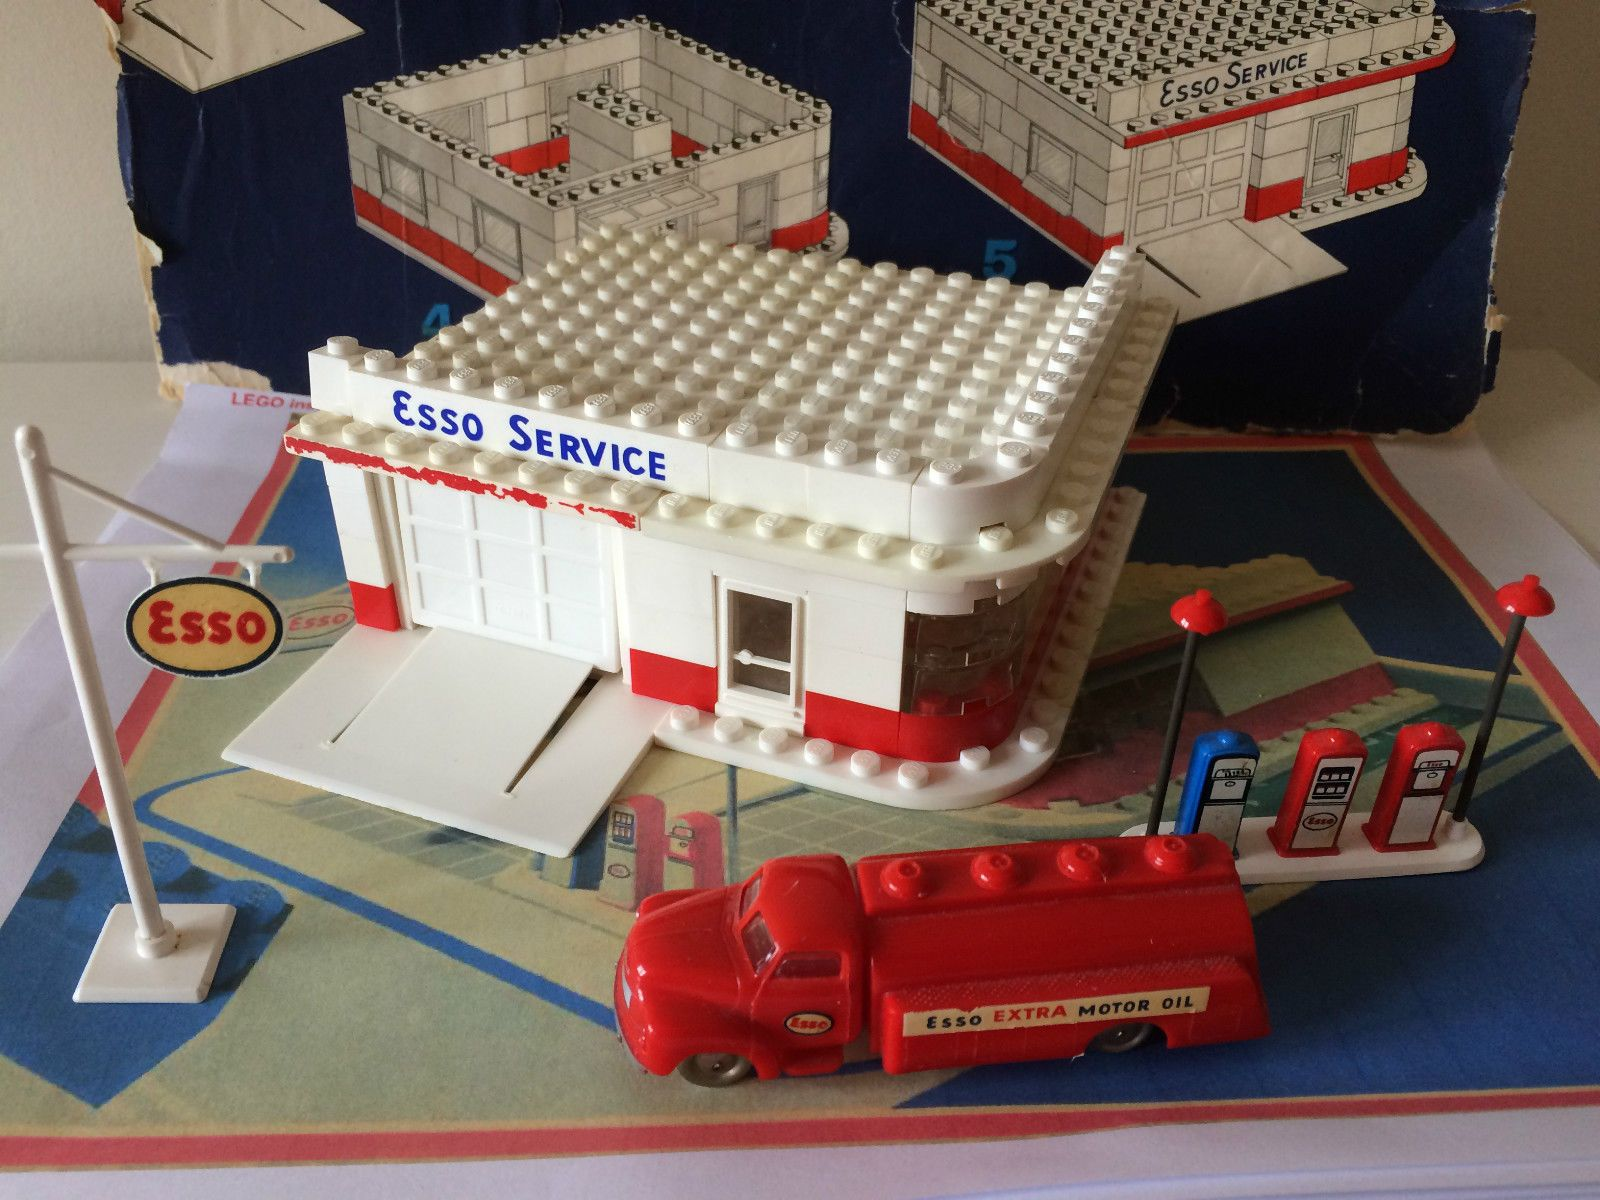 how to unclog a bathroom sink that drains slowly http www ebay fr itm lego vintage 1 87 310 esso service 26512